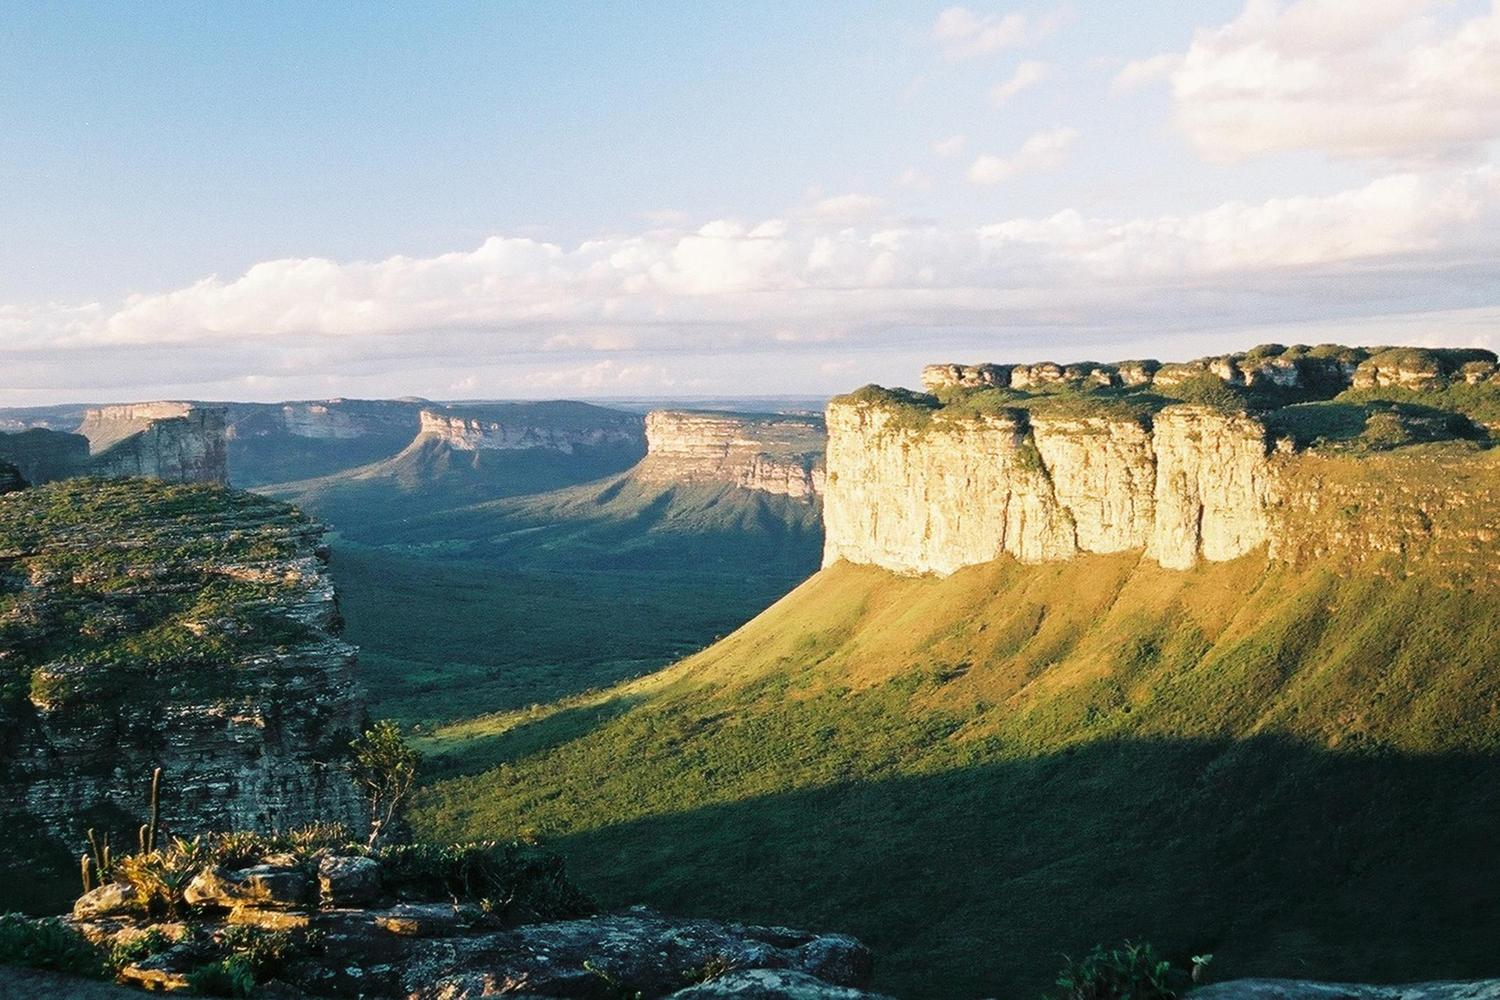 The view from Pao Ignacio, Chapada Diamantina